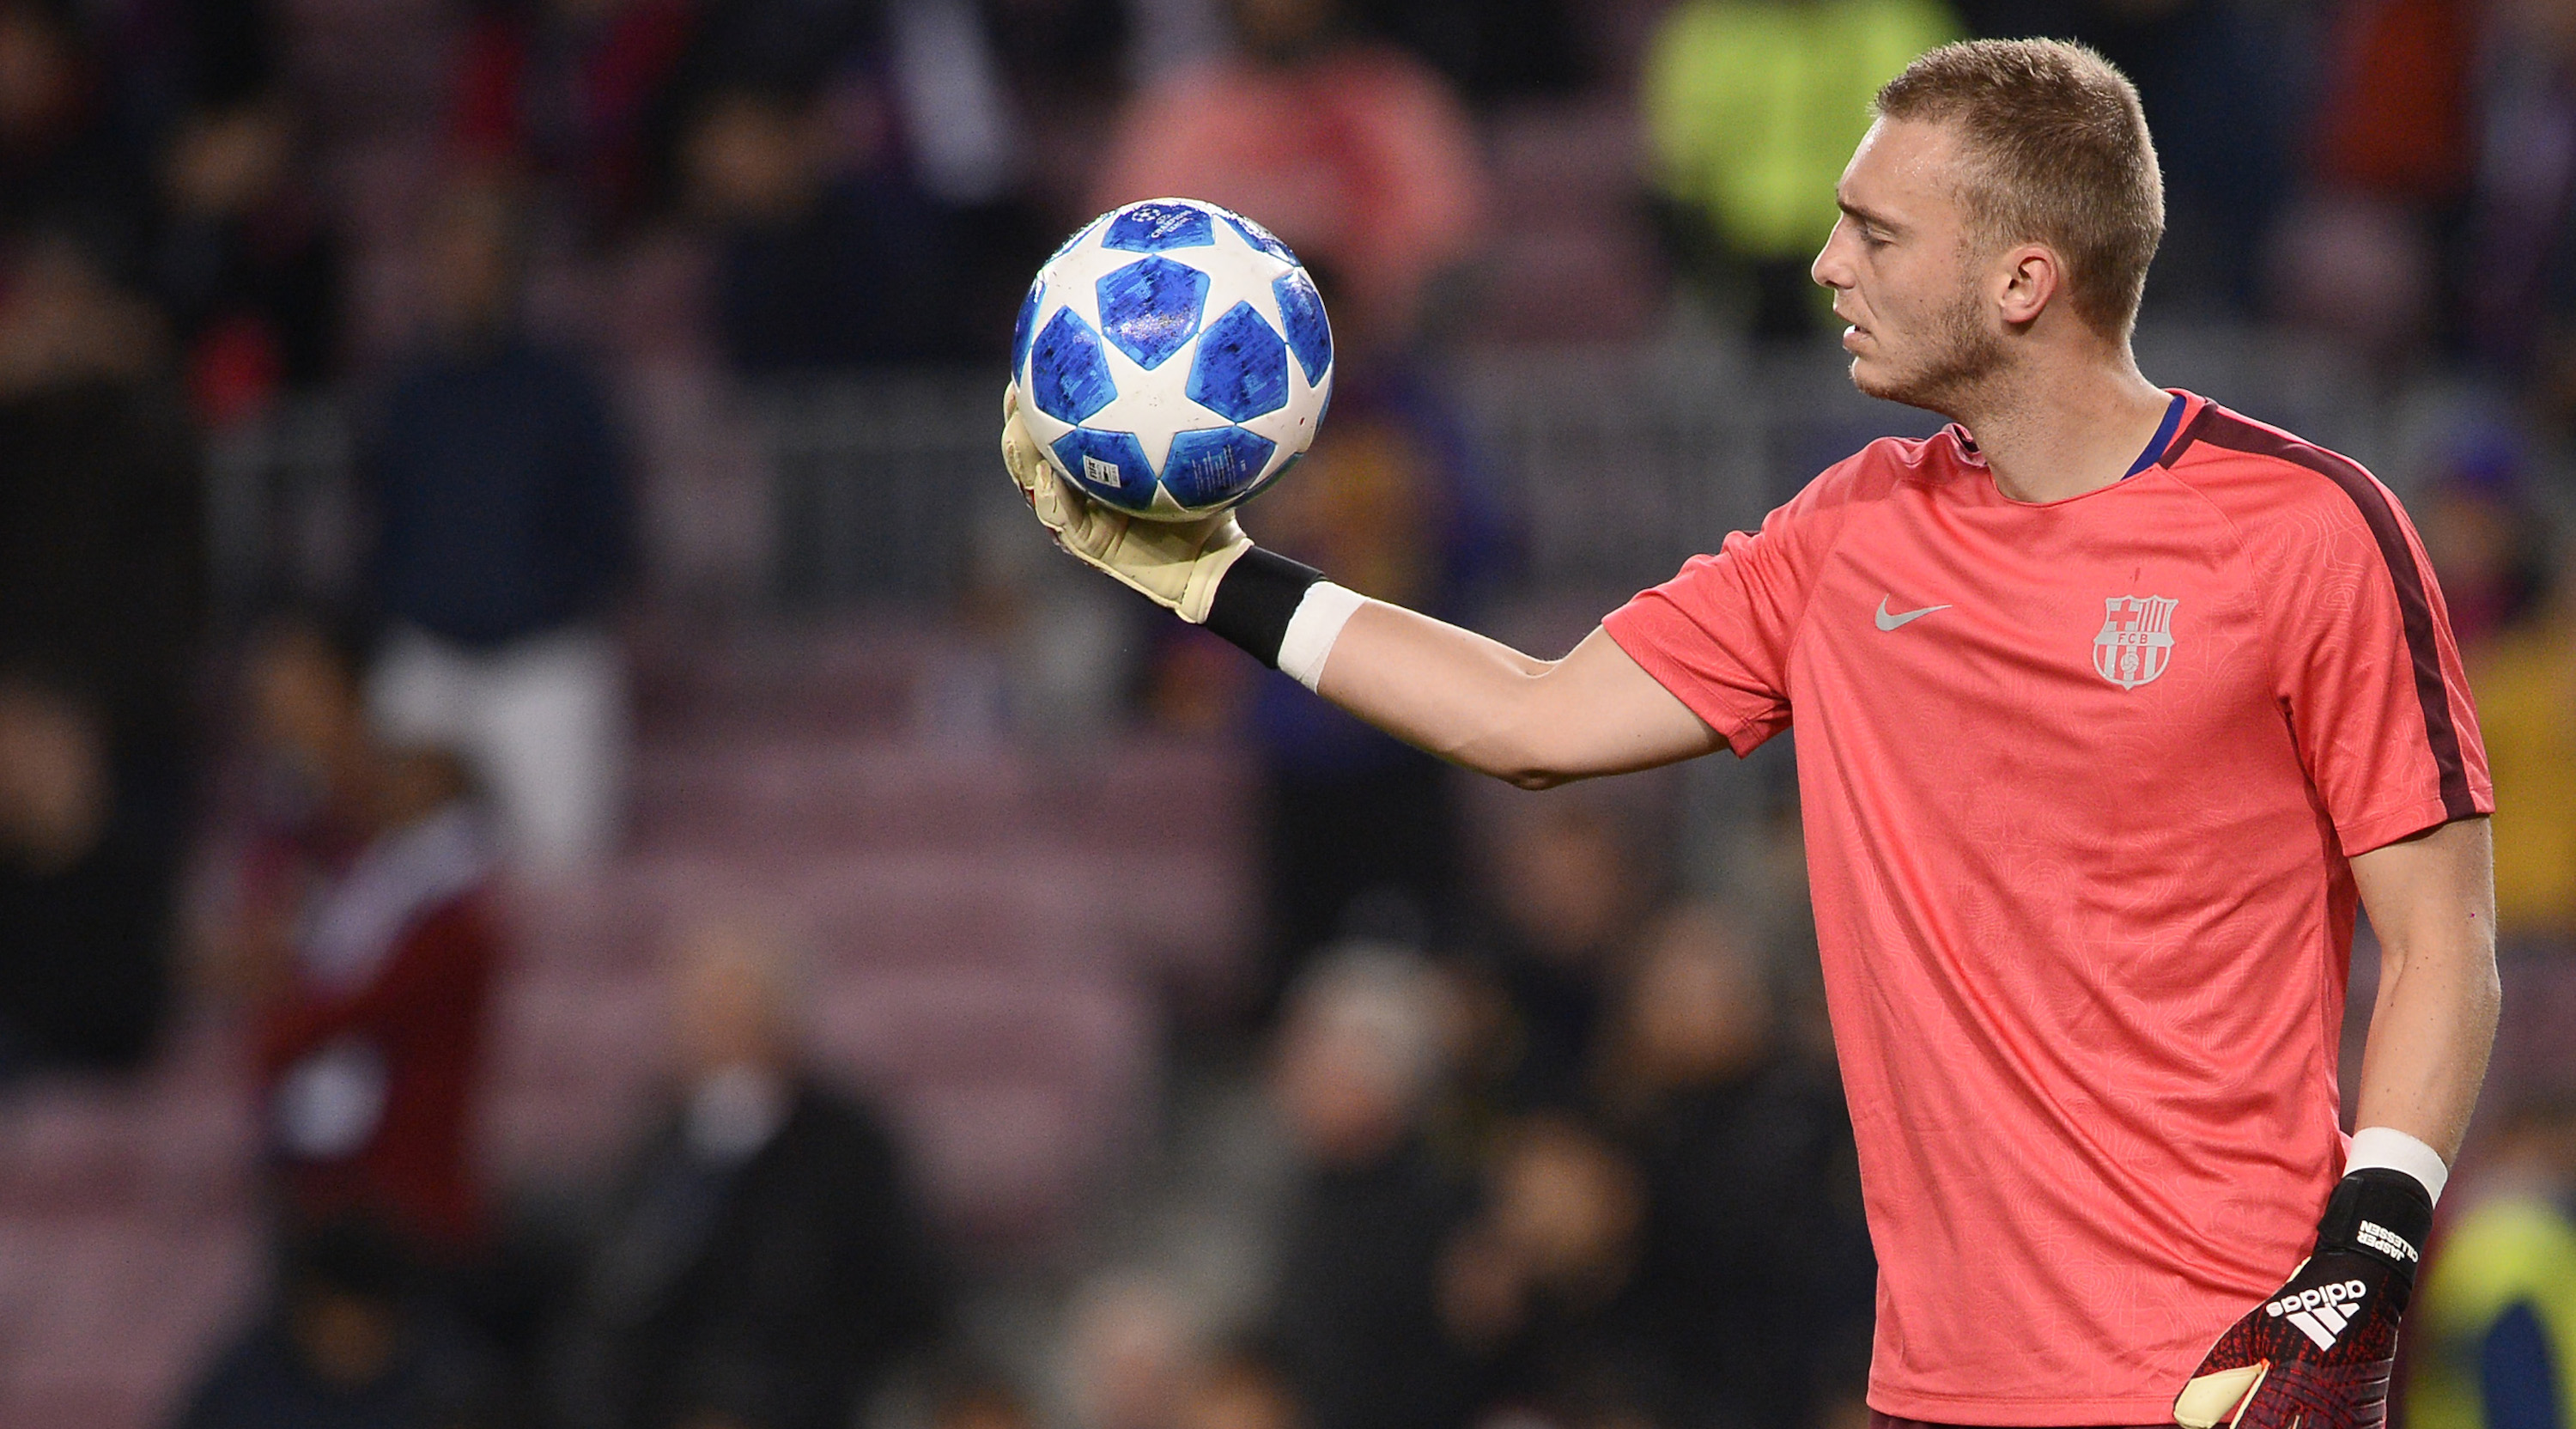 Barcelona's Dutch goalkeeper Jasper Cillessen warms up before the UEFA Champions League group B football match between FC Barcelona and Tottenham Hotspur at the Camp Nou stadium in Barcelona on December 11, 2018. (Photo by Josep LAGO / AFP) (Photo credit should read JOSEP LAGO/AFP/Getty Images)